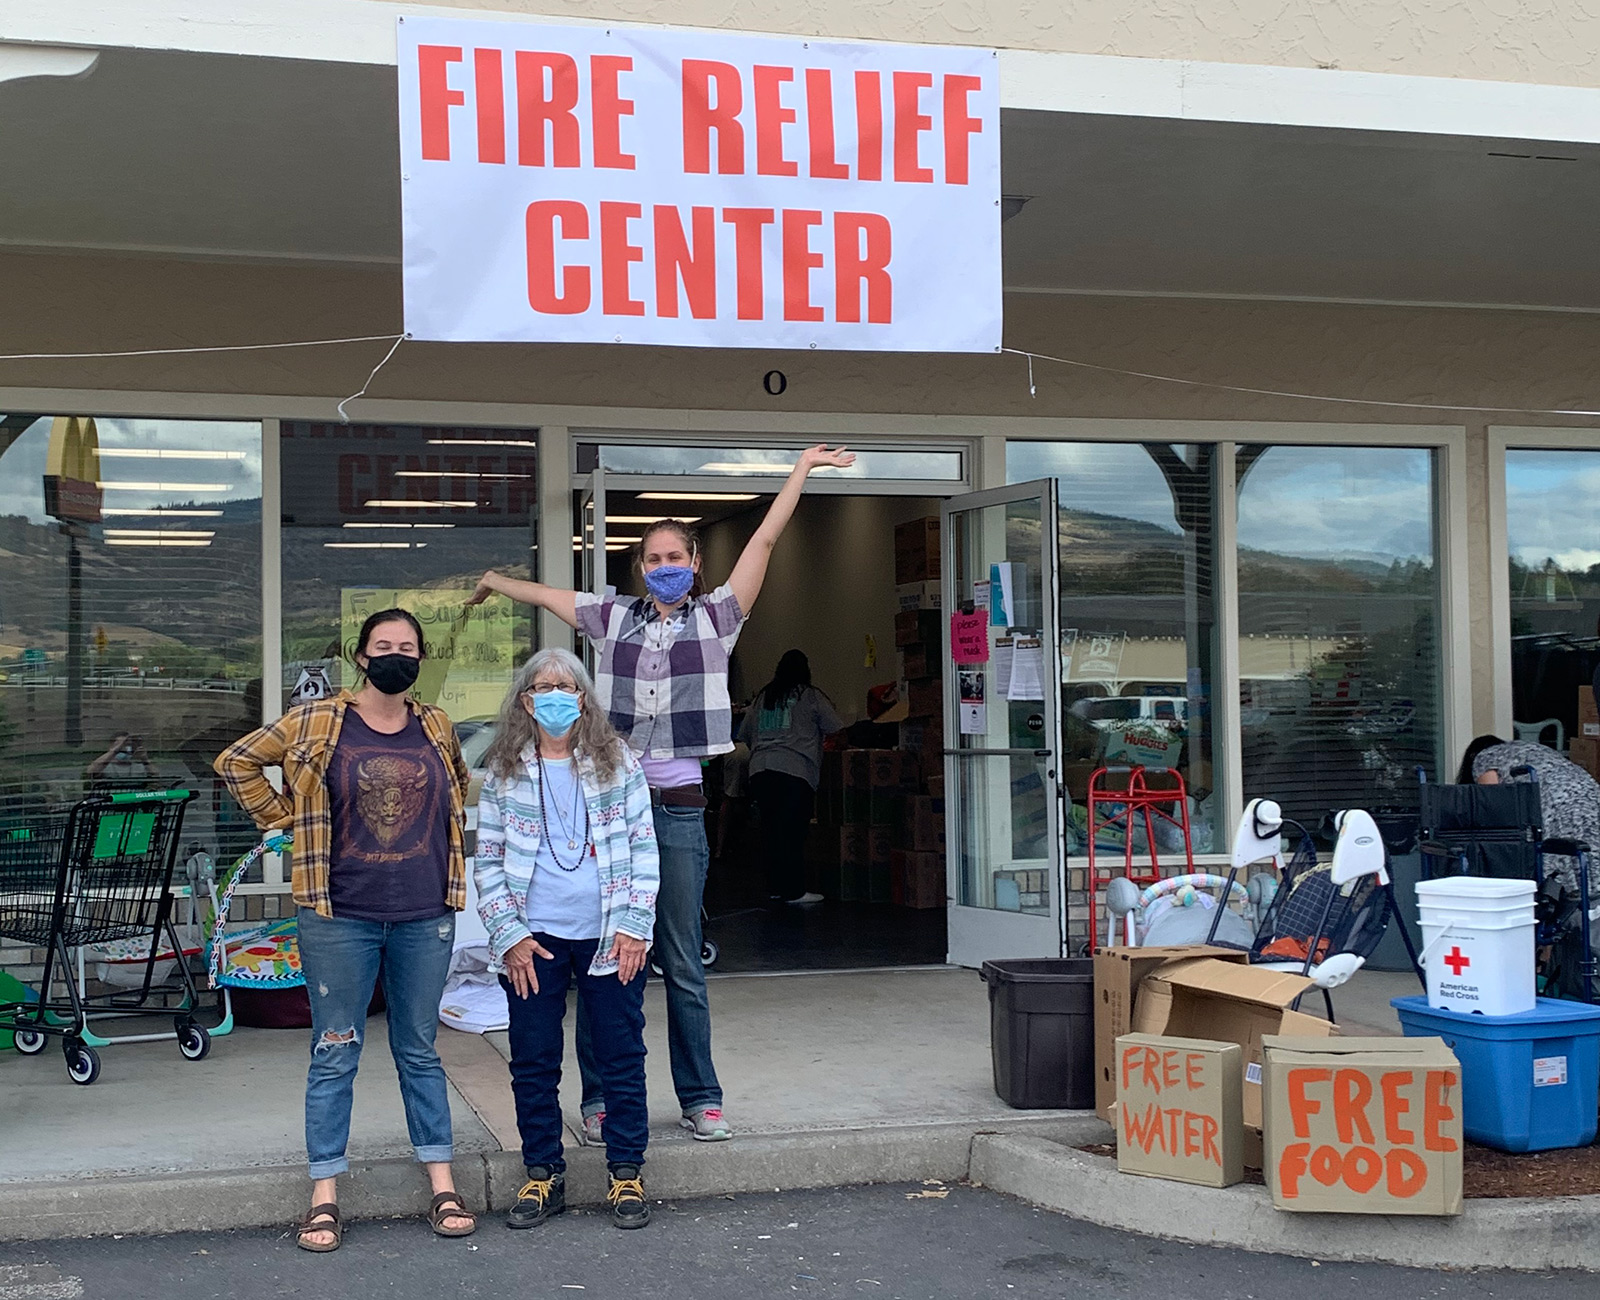 A fire relief center set up to provide free food and water.